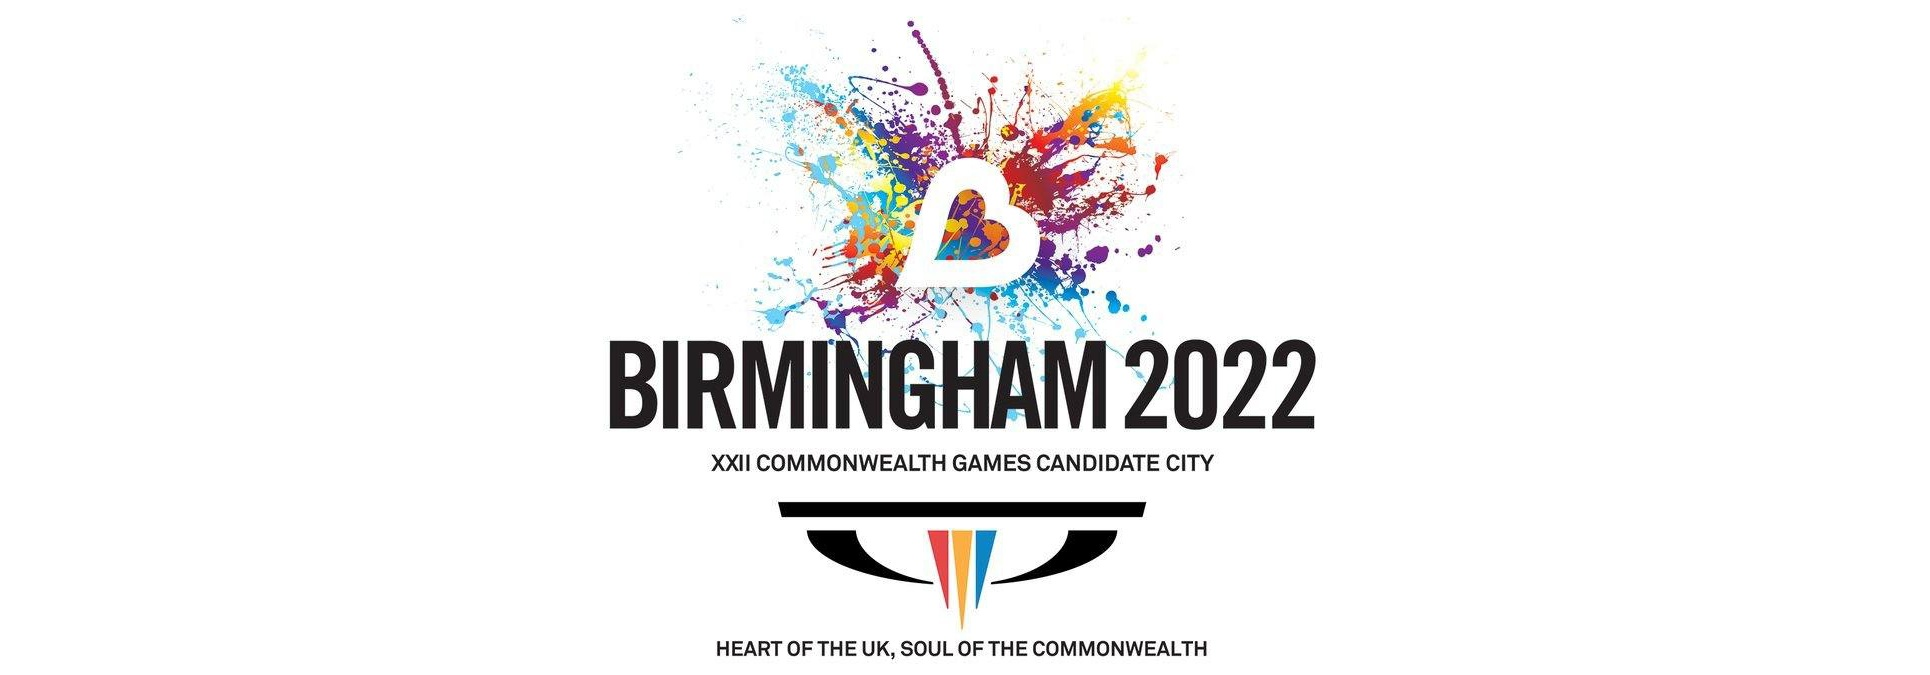 Culture Programme of the 2022 Birmingham Commonwealth Games.